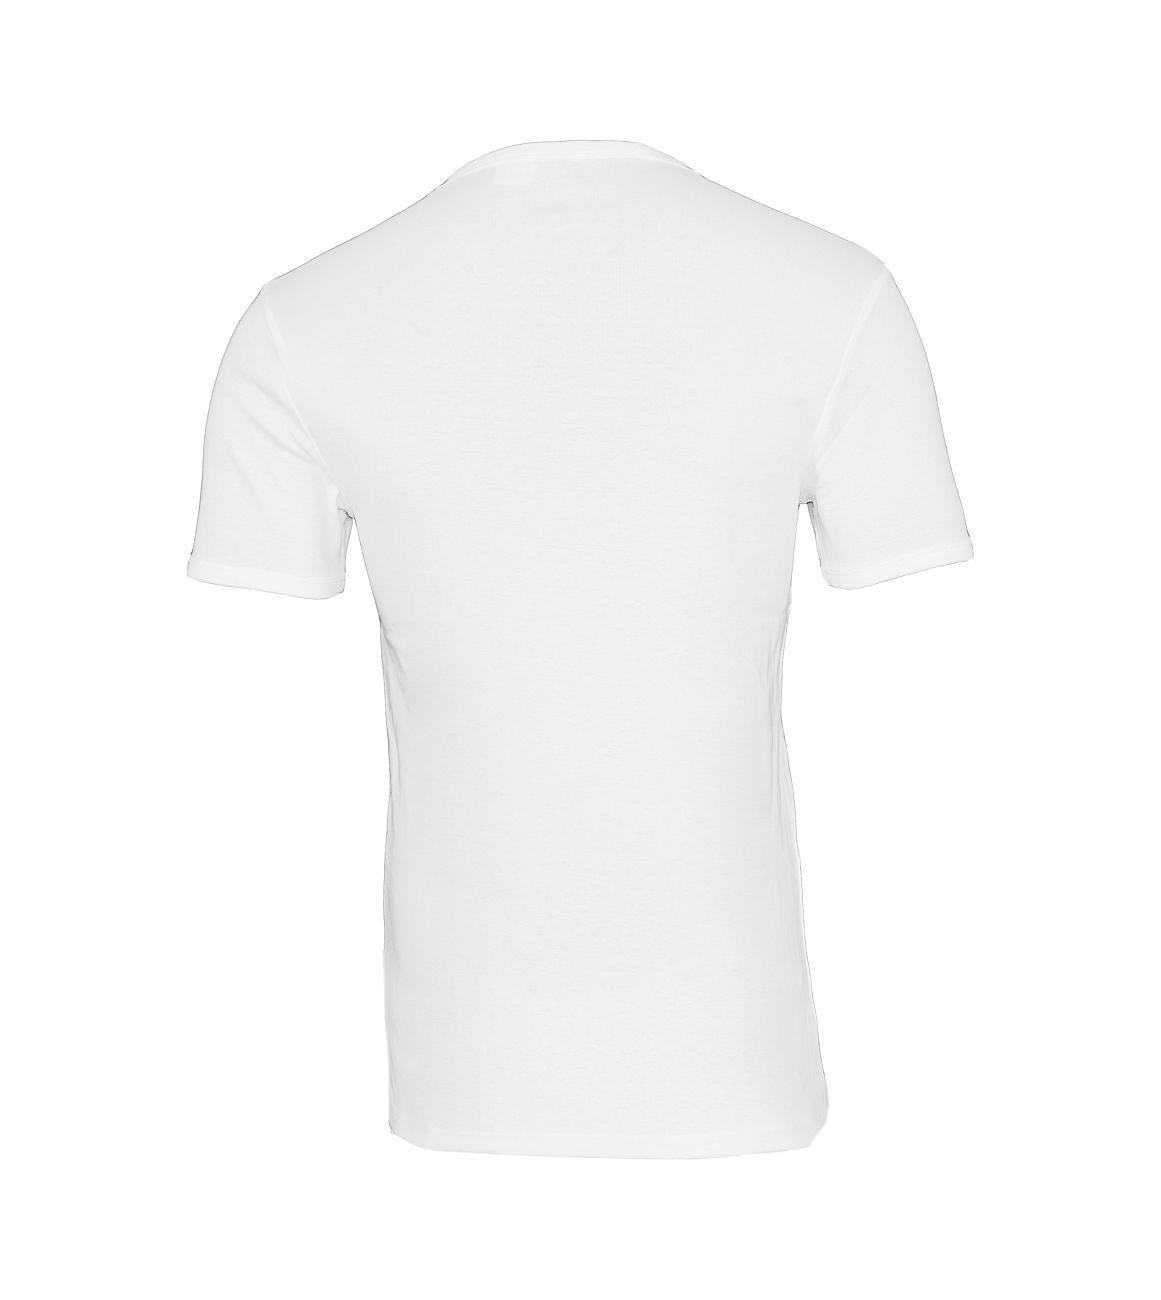 G-Star RAW 2er Pack T-Shirt Slim Fit Rundhals D07205-124-110 White F18-GSP1